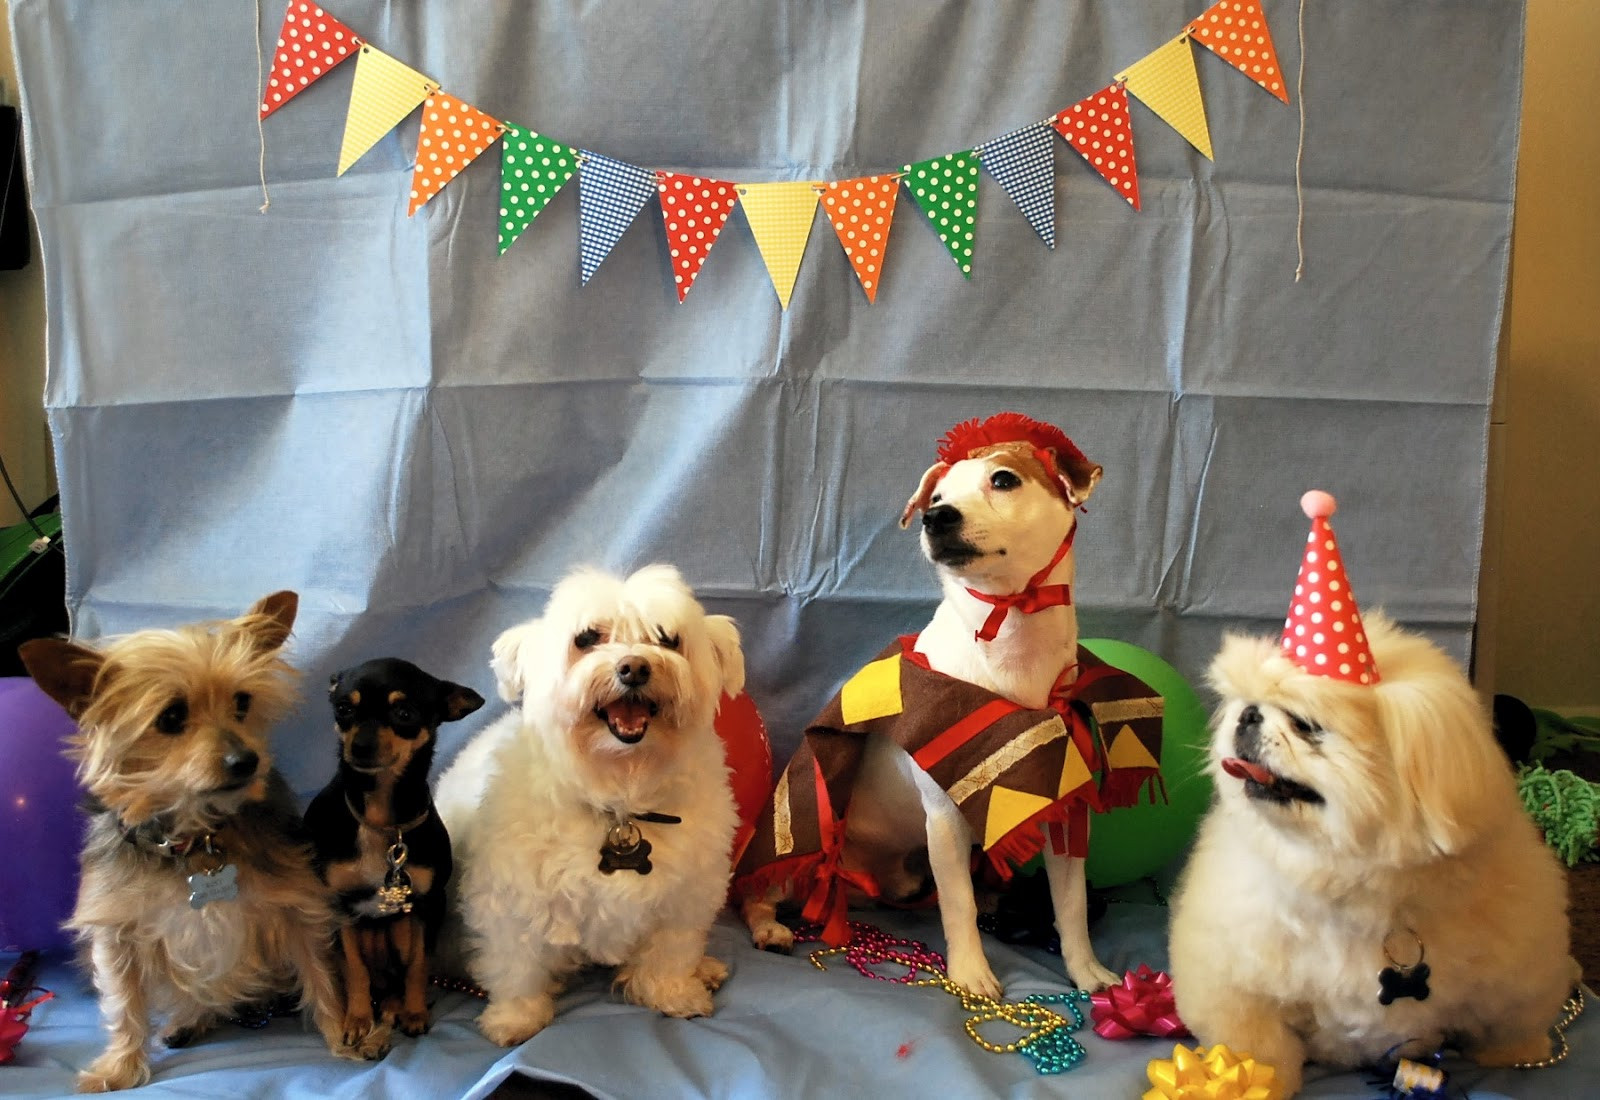 Best ideas about Dog Birthday Decorations . Save or Pin Daydreamer Creator DIY Extraordinaire Dog Birthday Party Now.